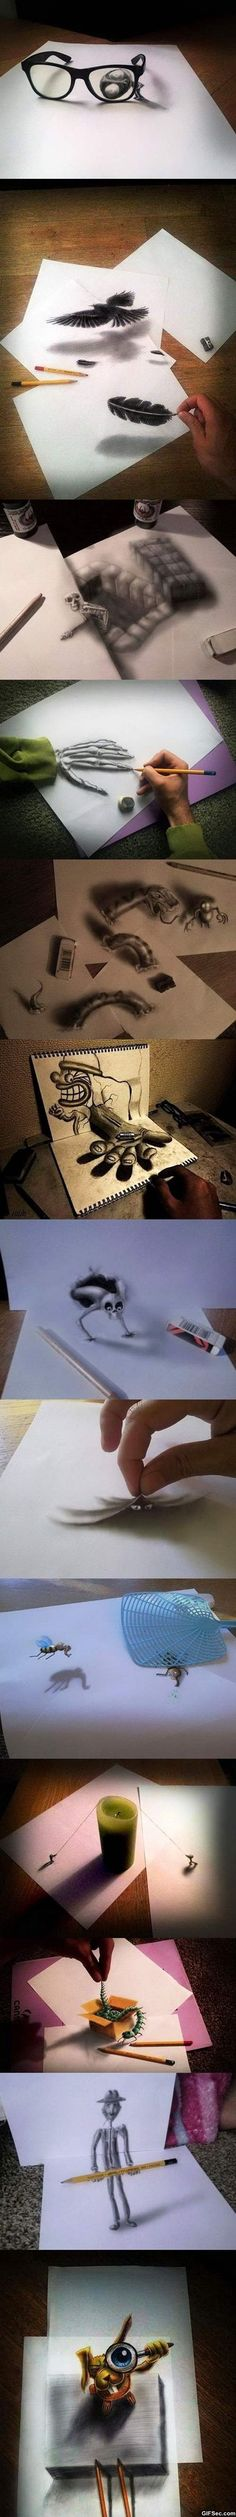 Awesome 3D Optical Illusions